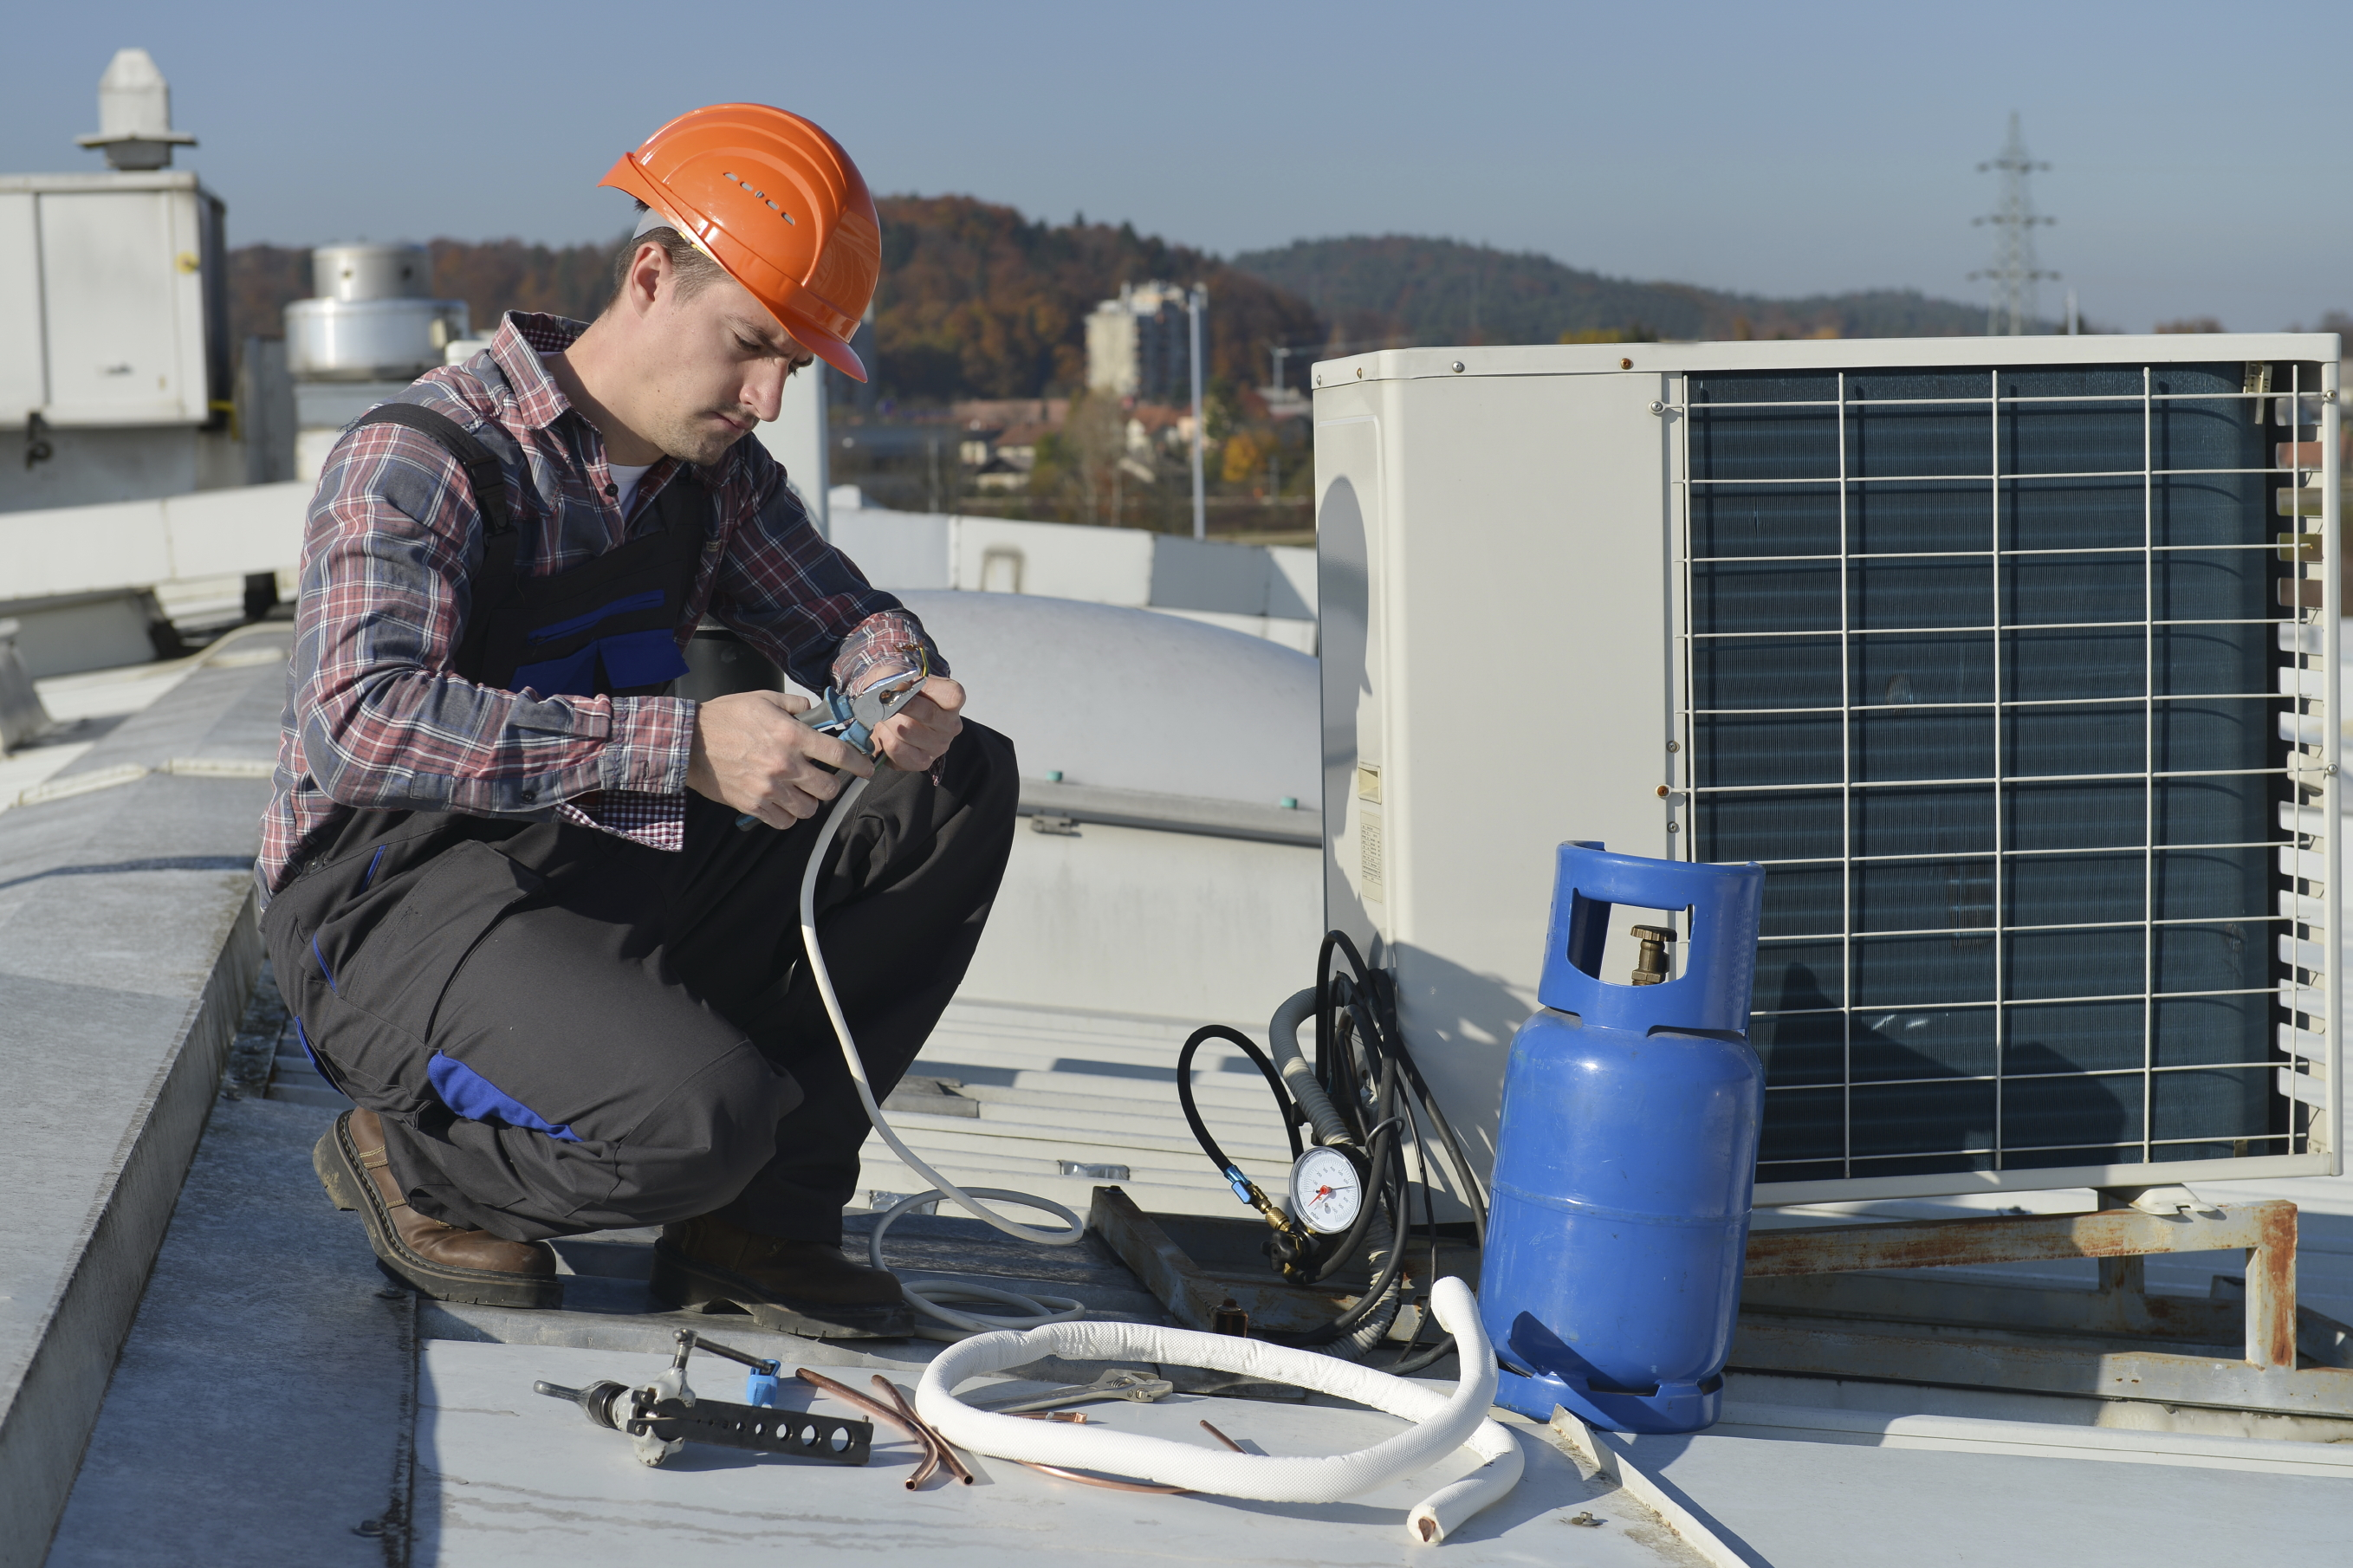 Commercial Air Conditioning Repair Near Me